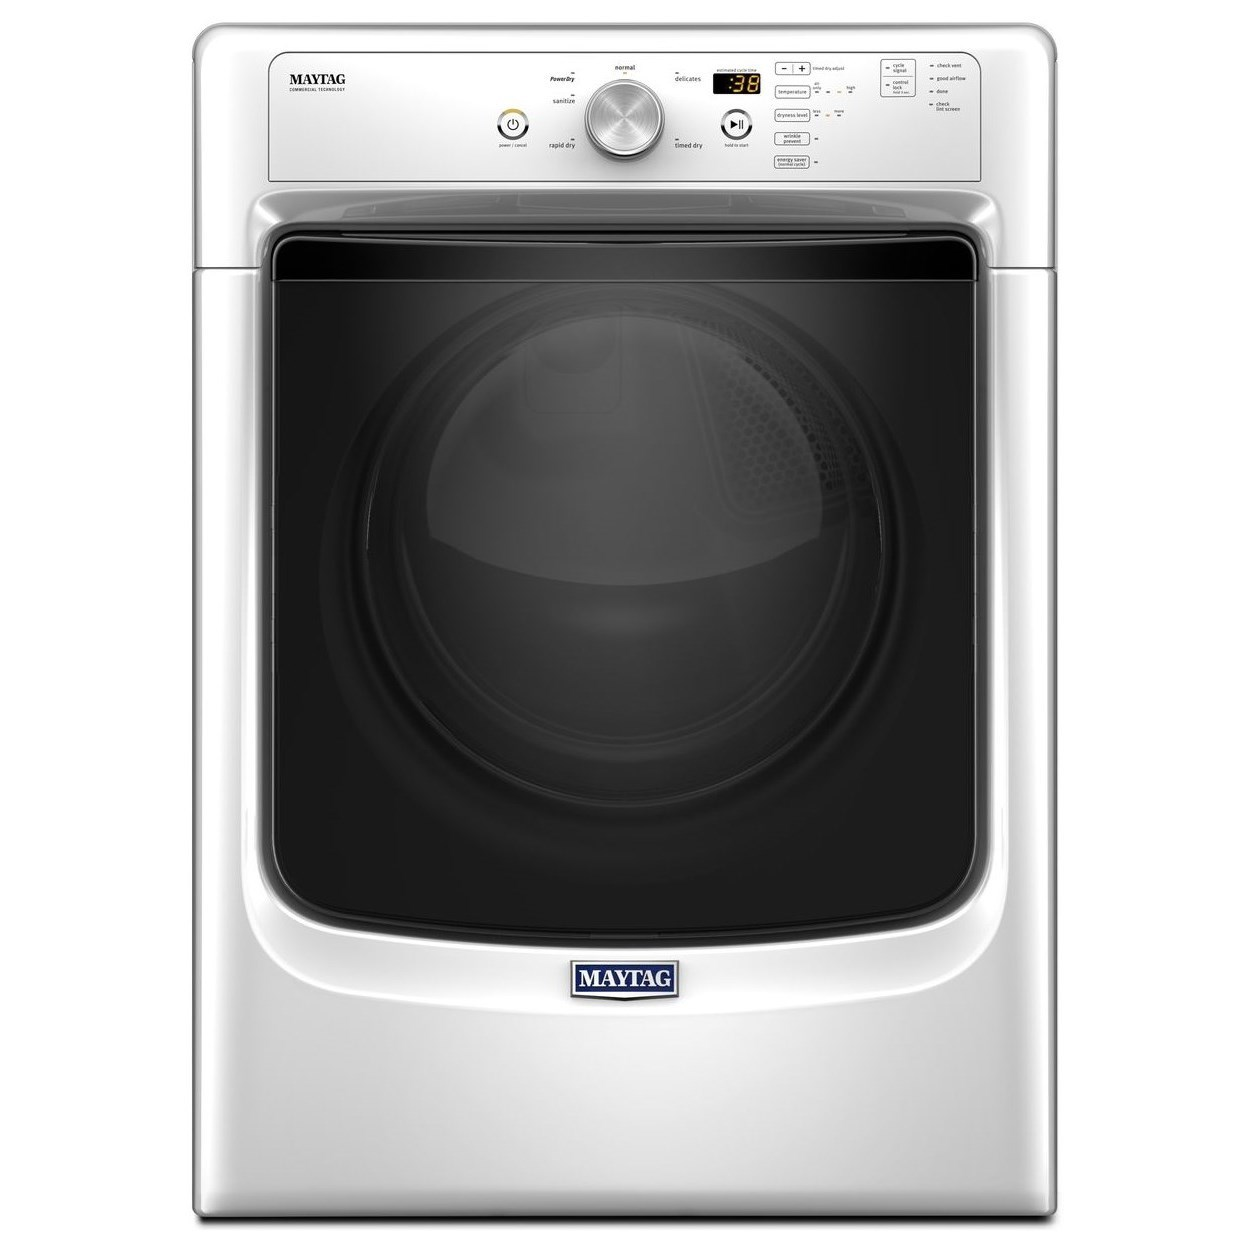 Maytag Front Load Electric Dryers 7.4 Cu. Ft. Large Capacity Dryer - Item Number: MED3500FW